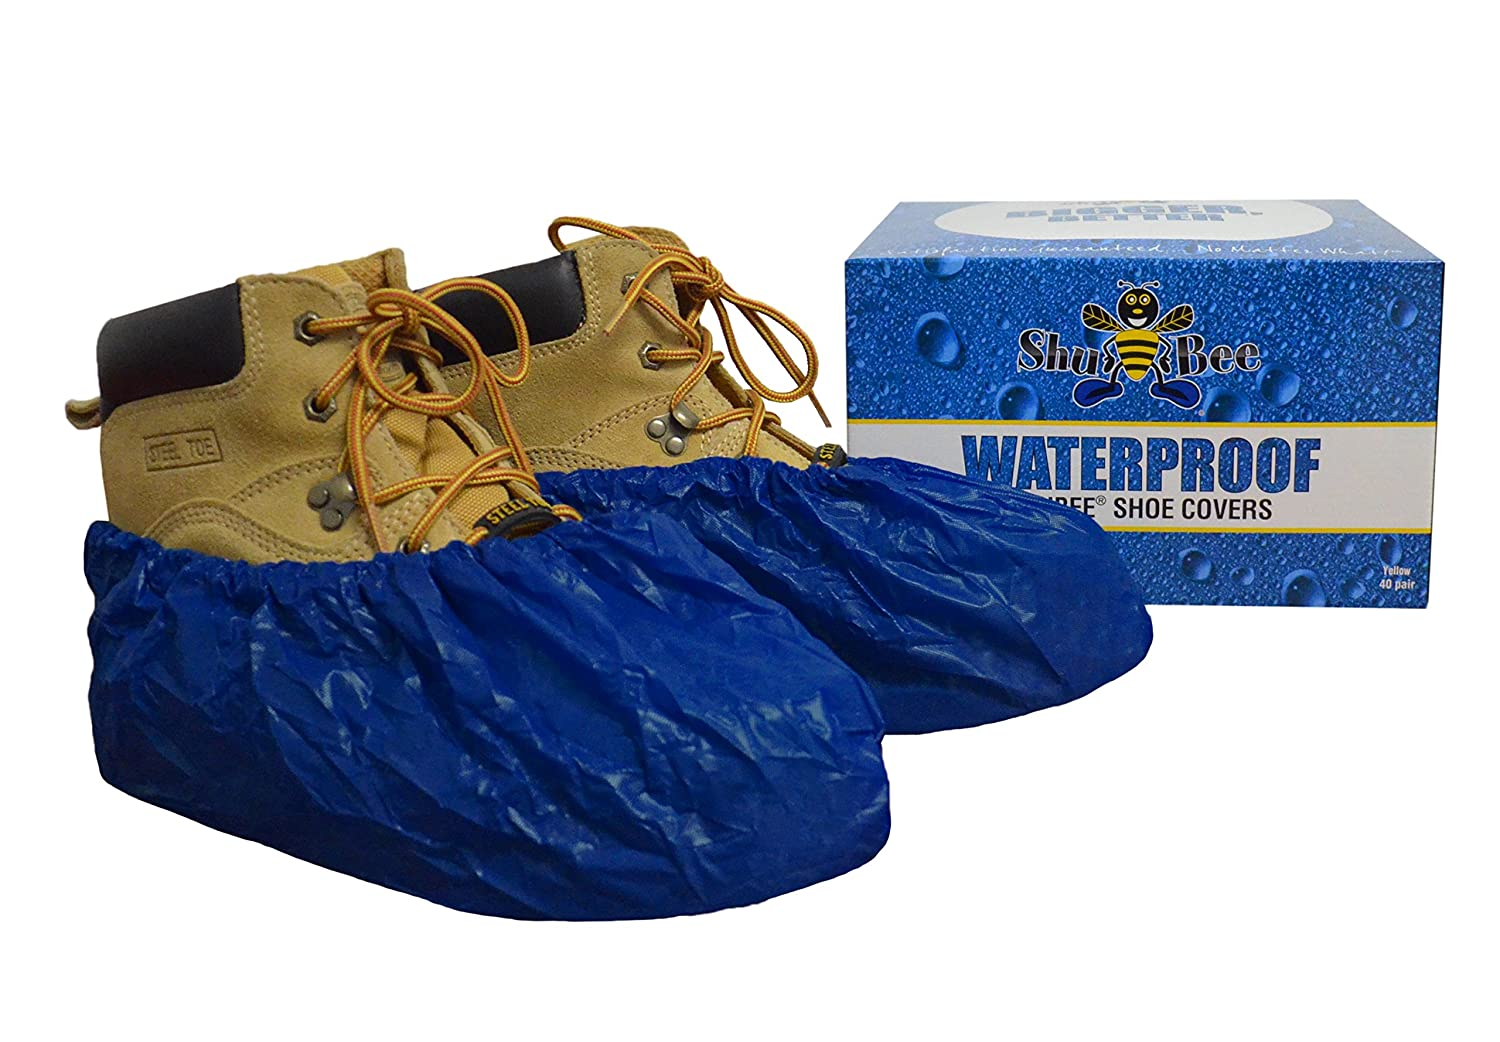 SHUBEE C-SB-SC-WP-DB WATERPROOF PROTECTIVE SHOE COVERS, DARK BLUE (40 PAIR PER BOX) MC350202